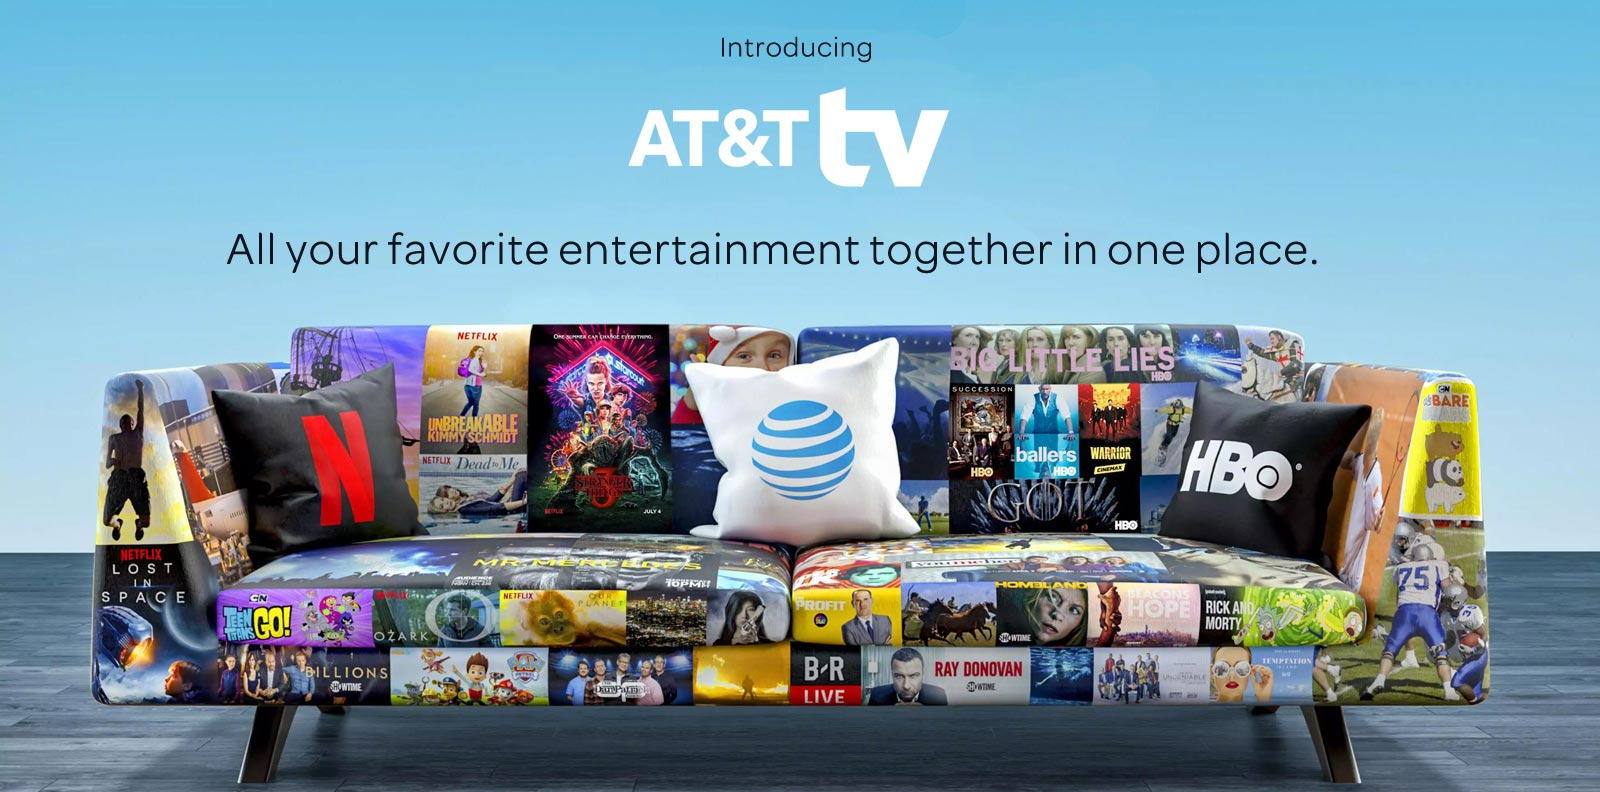 Introducing AT&T TV - All Your Favorite Entertainment Together In One Place